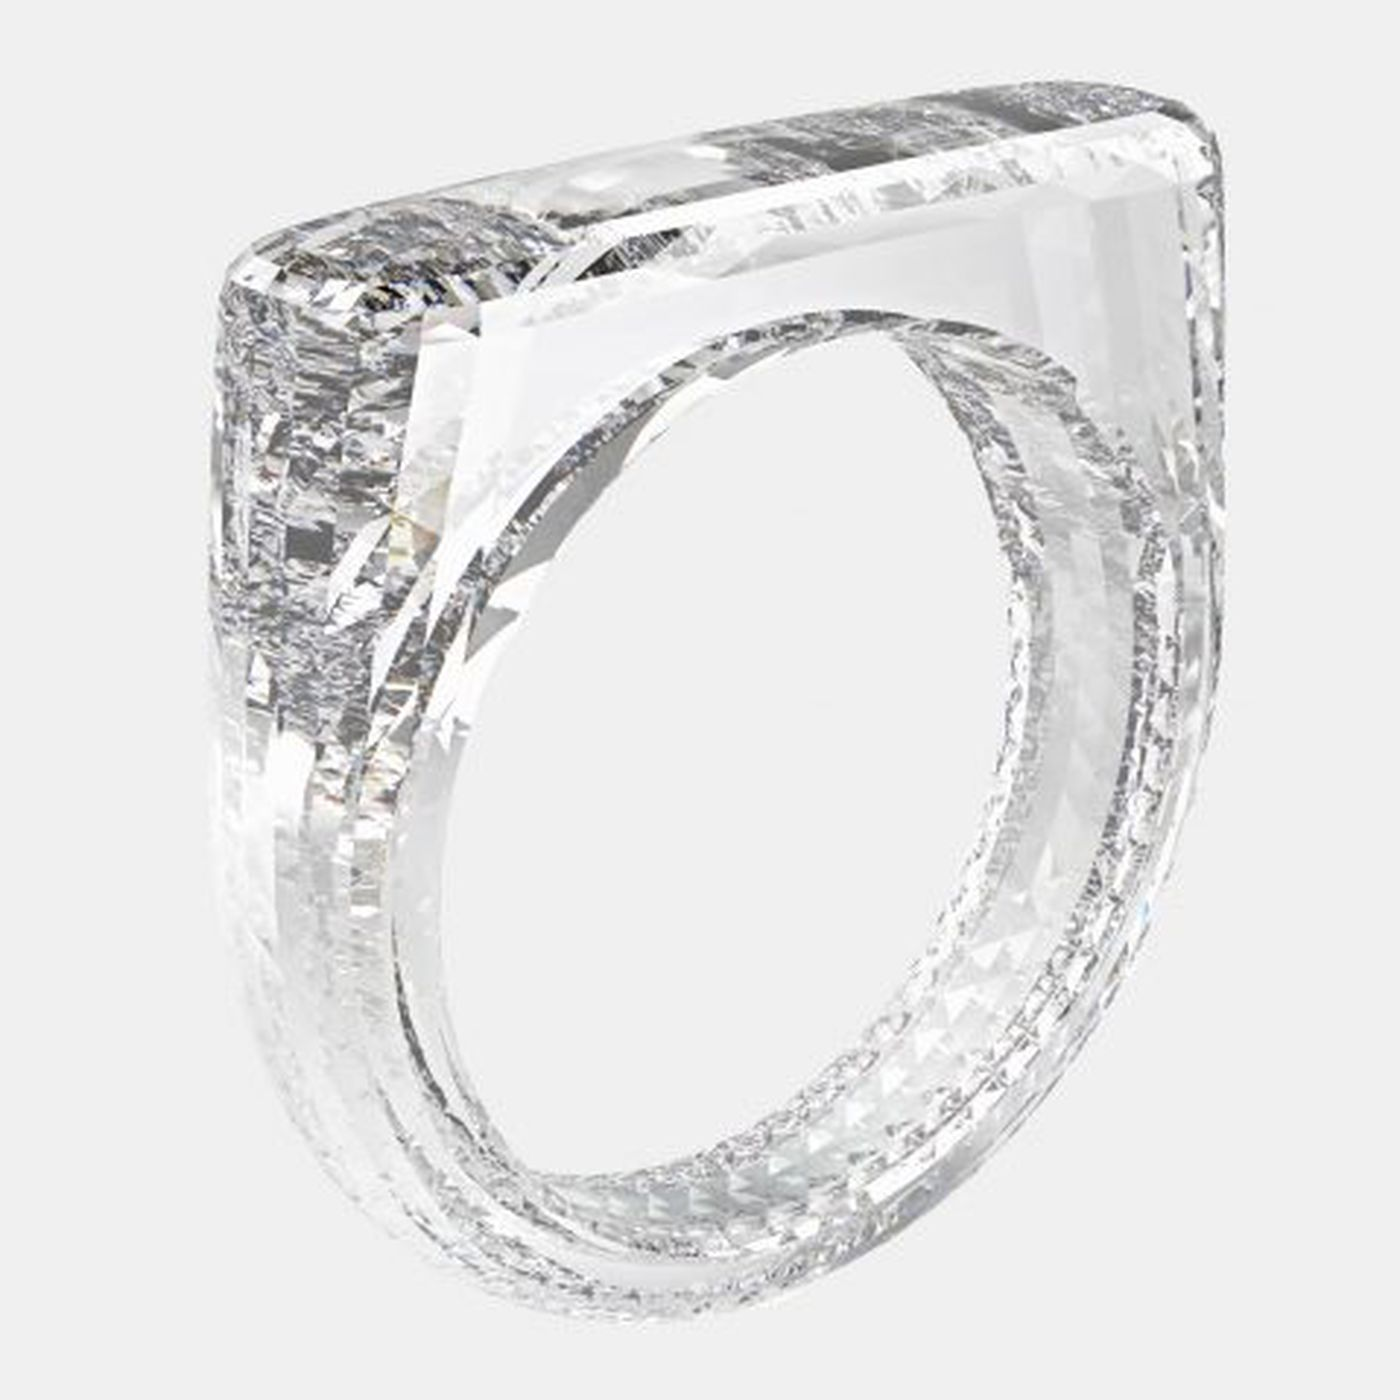 jony ive and marc newson designed a 250 000 all diamond ring for